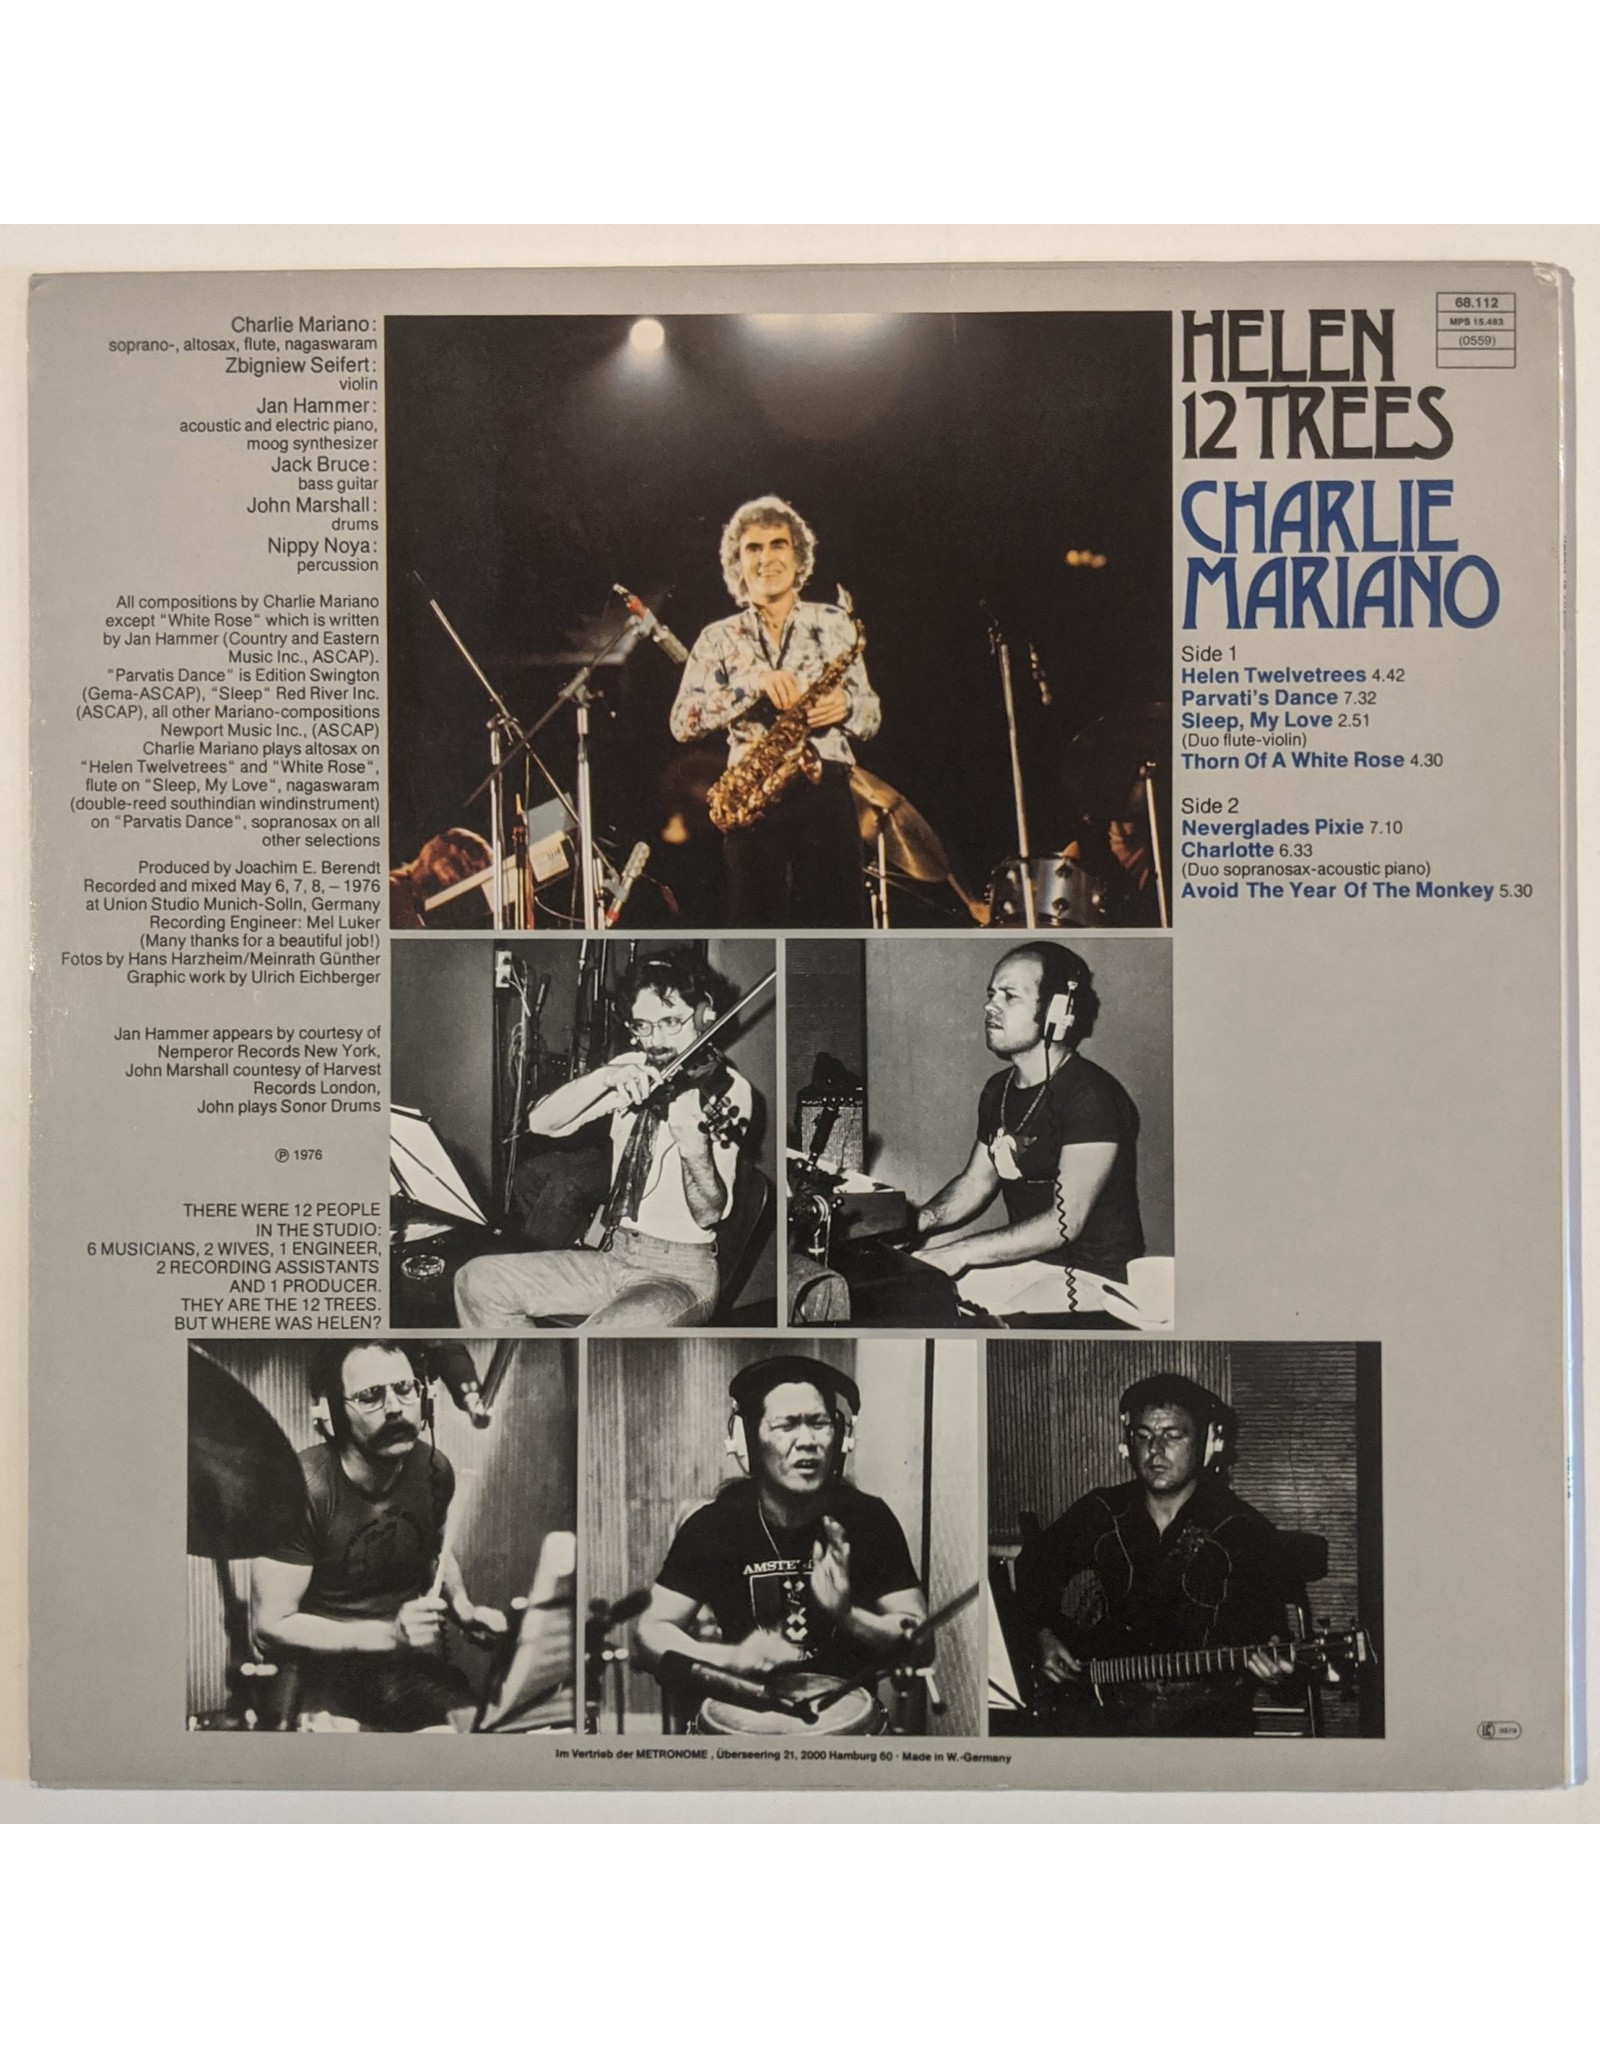 USED: Charlie Mariano: Helen 12 Trees LP